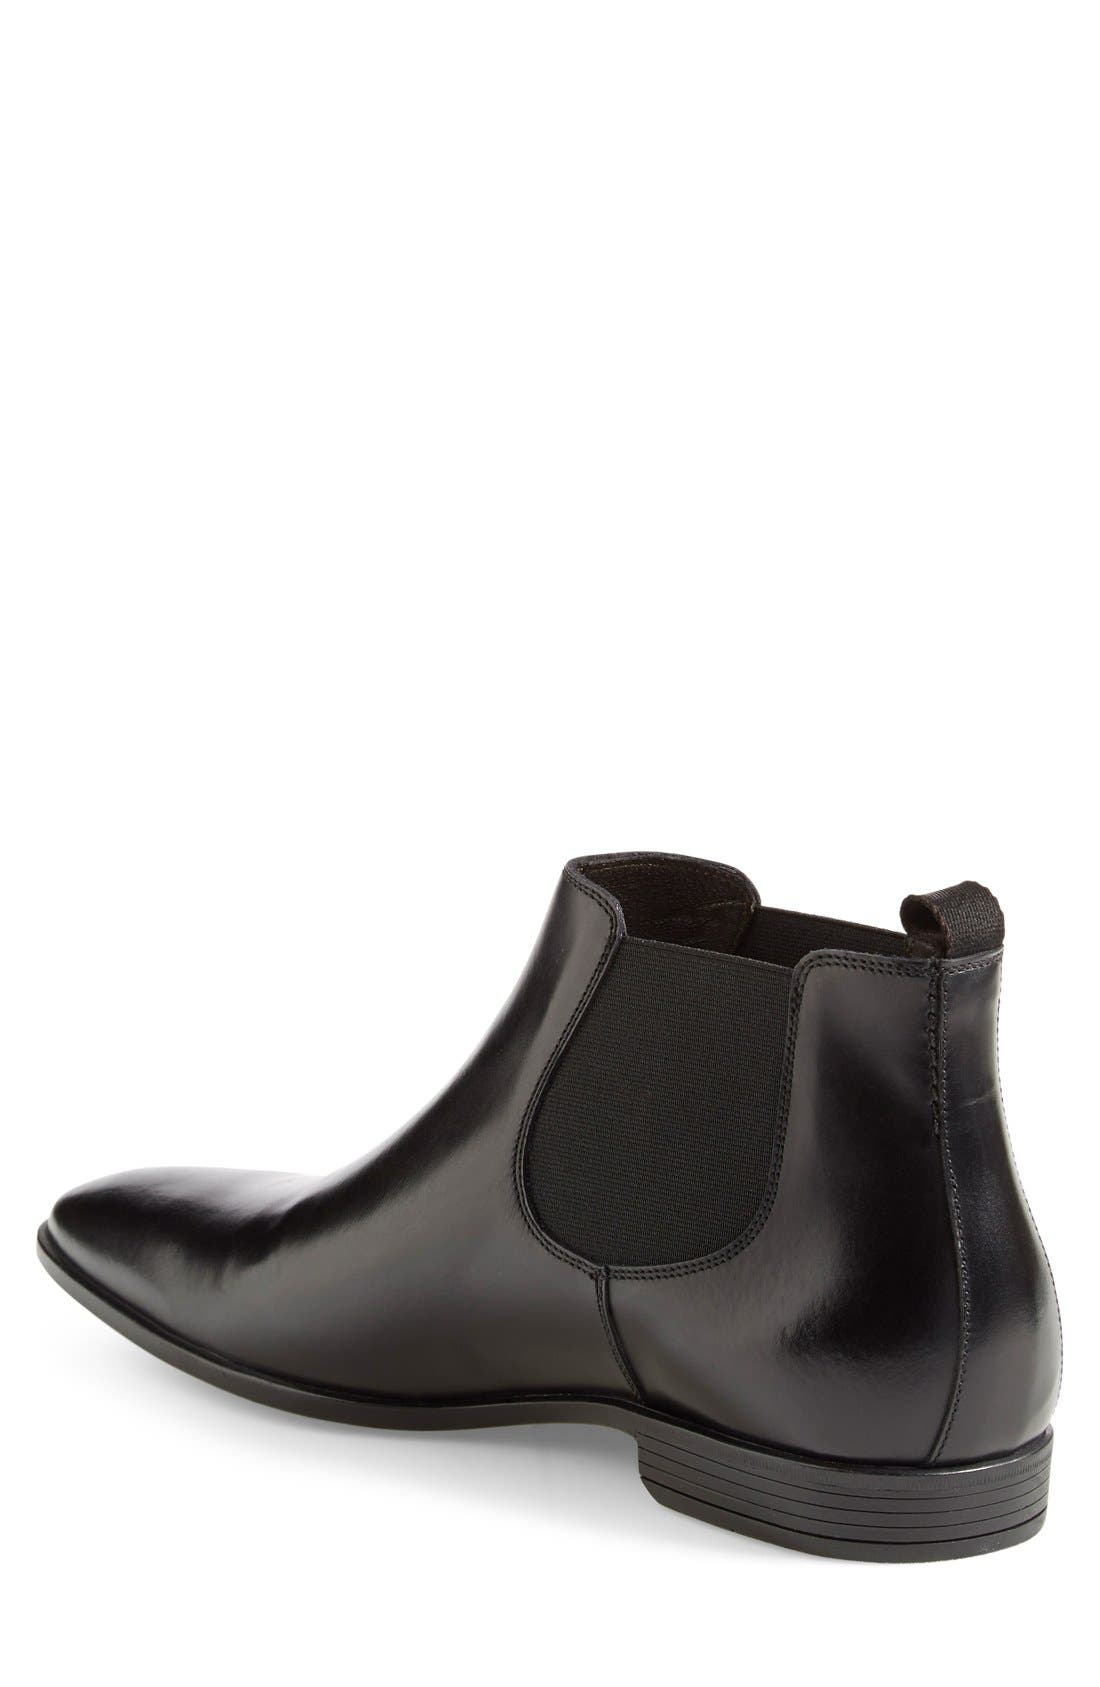 'Canton' Chelsea Boot,                             Alternate thumbnail 5, color,